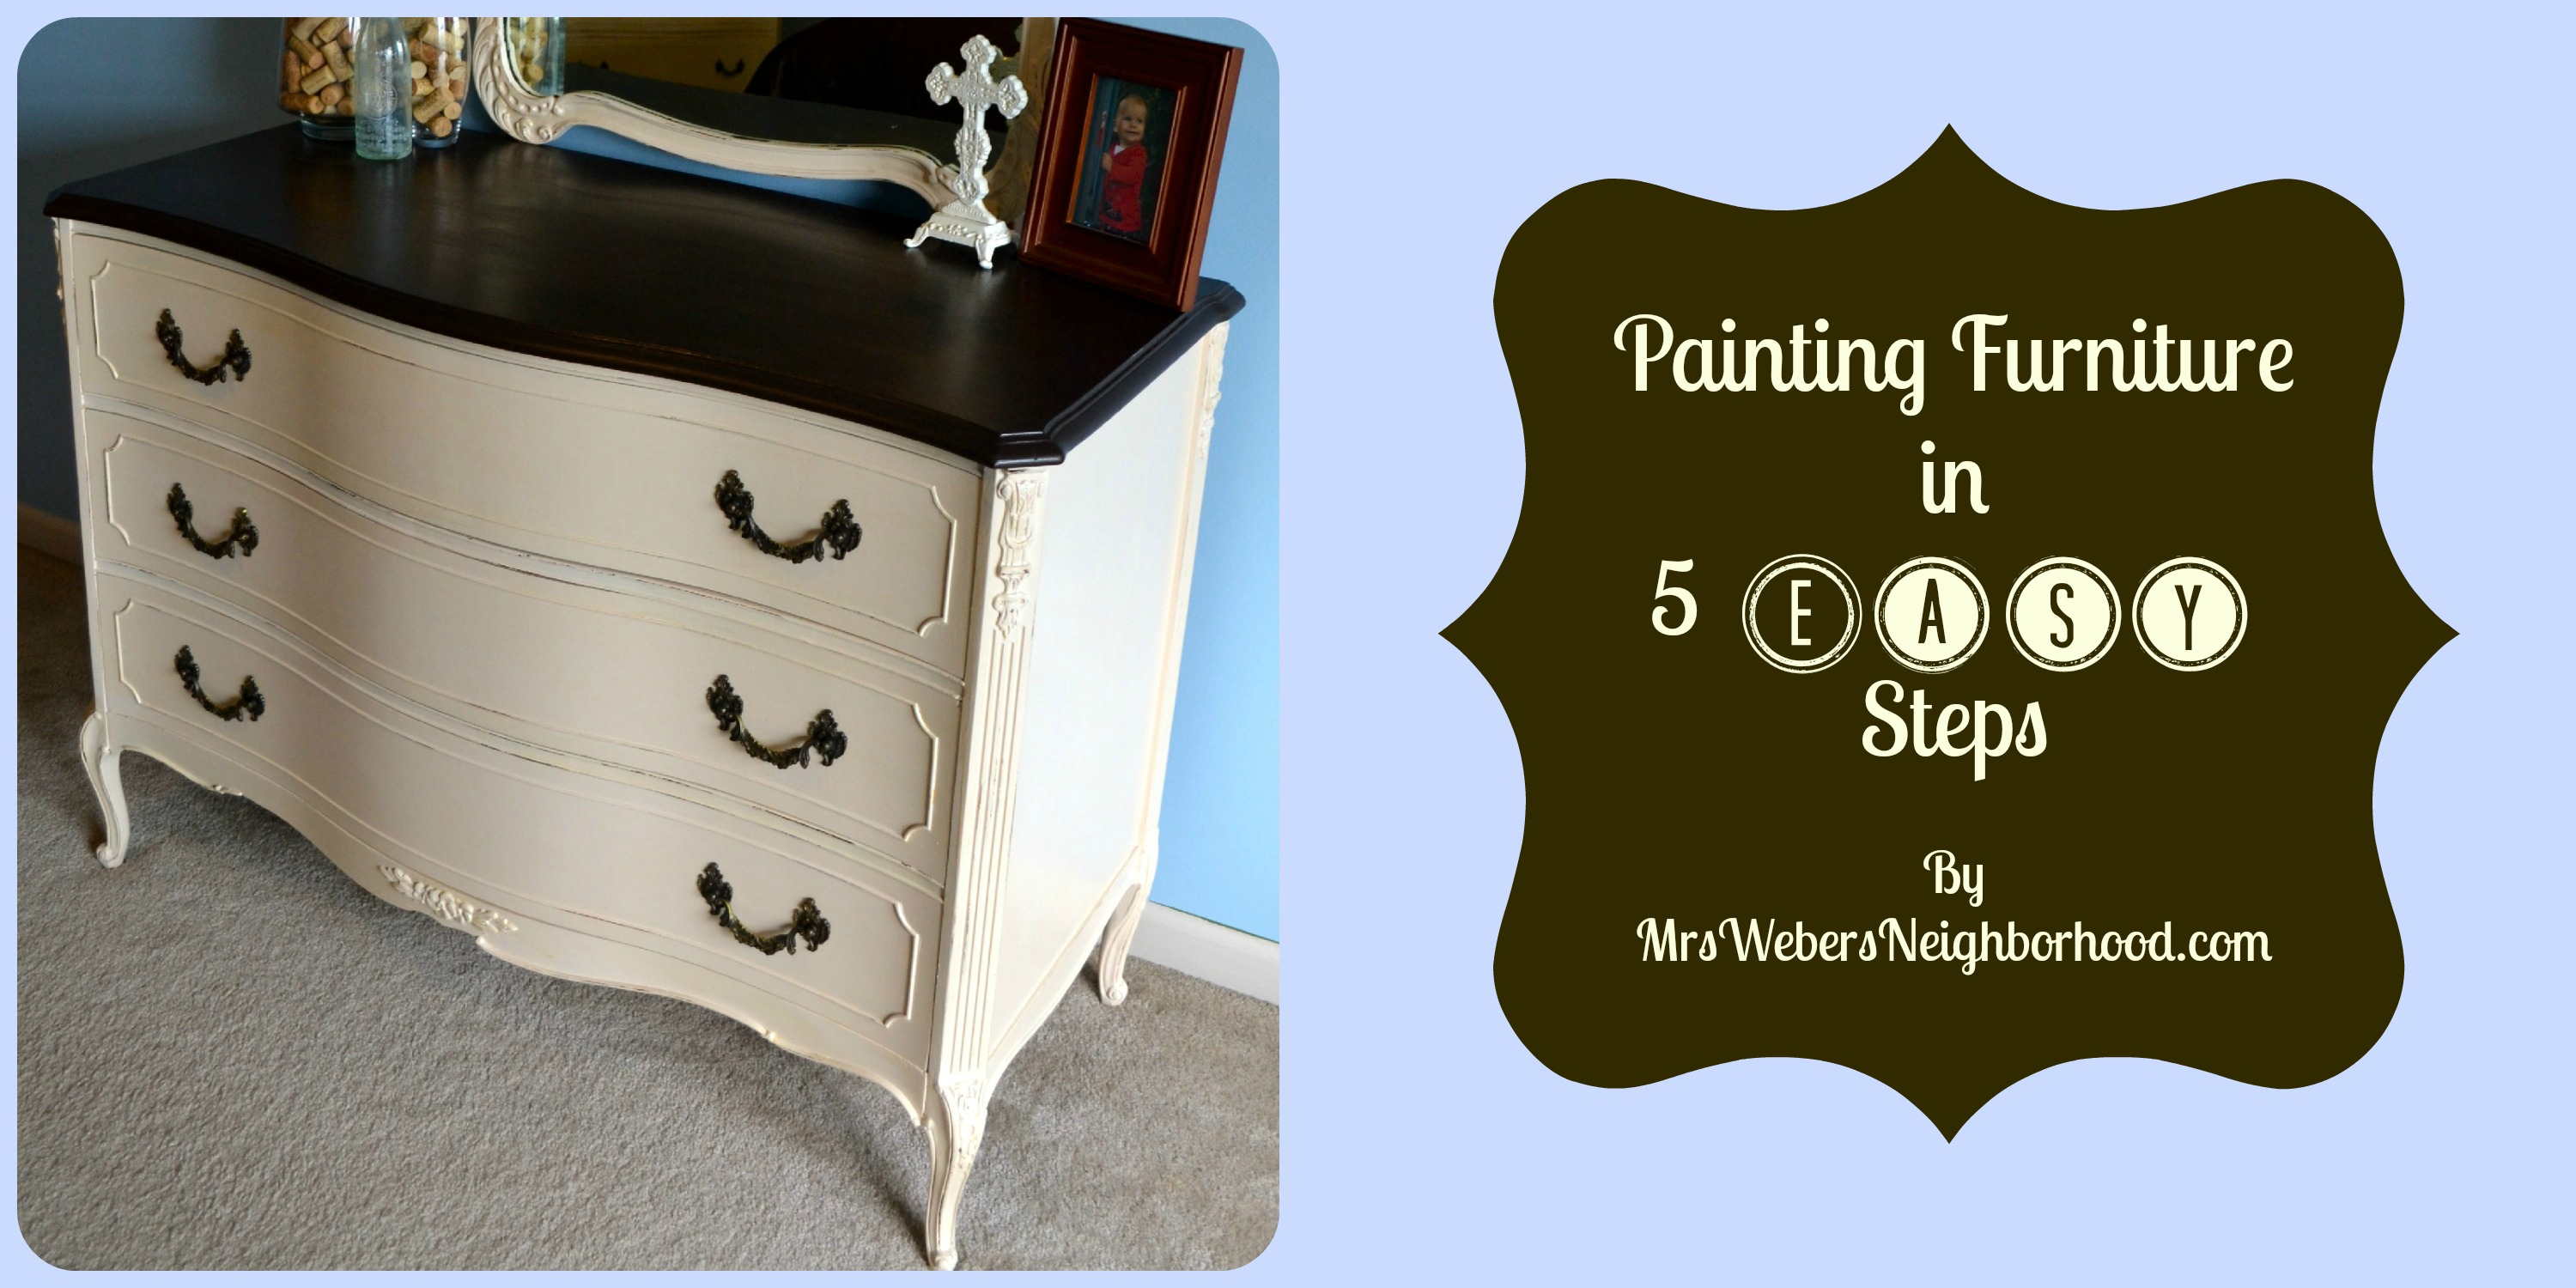 My $11 Bedroom Set + Painting Furniture in 11 Easy Steps - Mrs